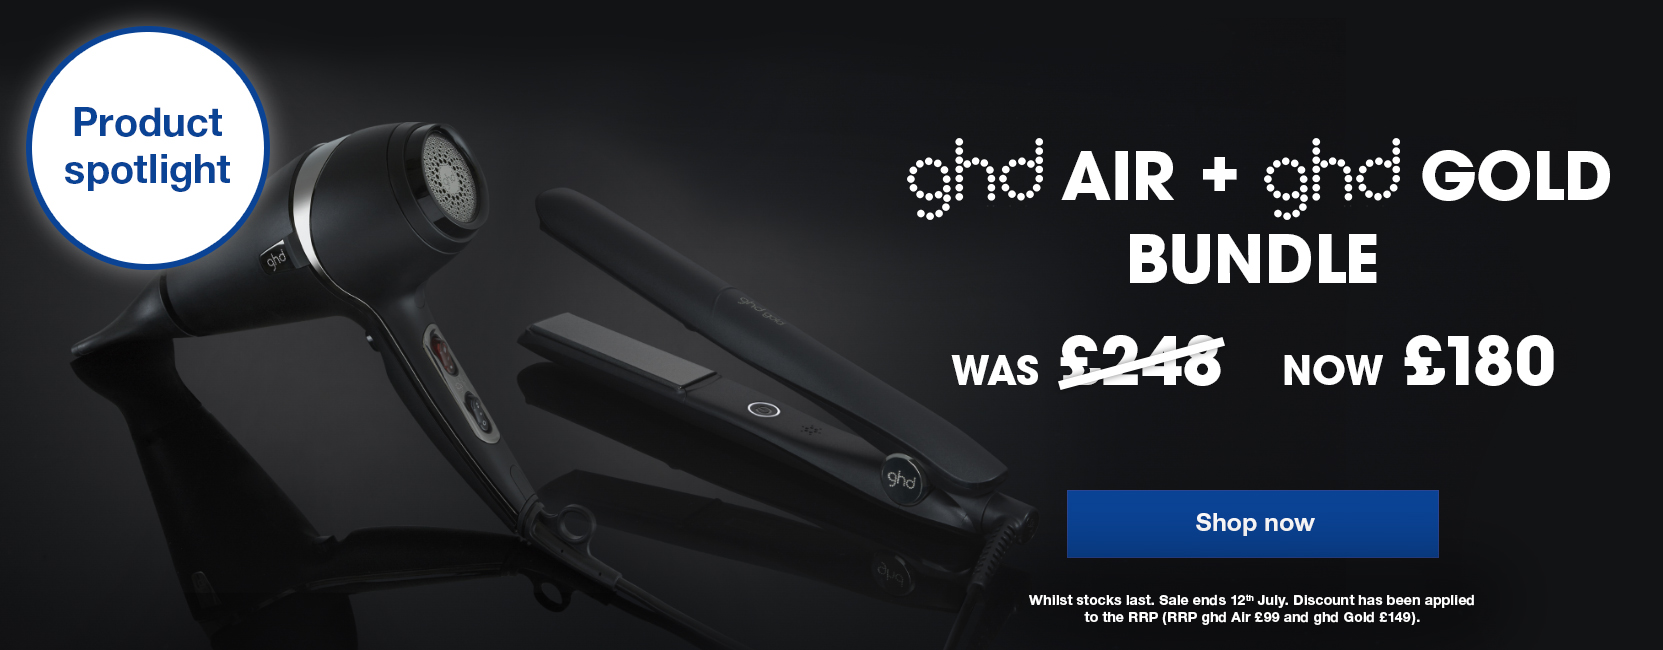 ghd gold and air bundle